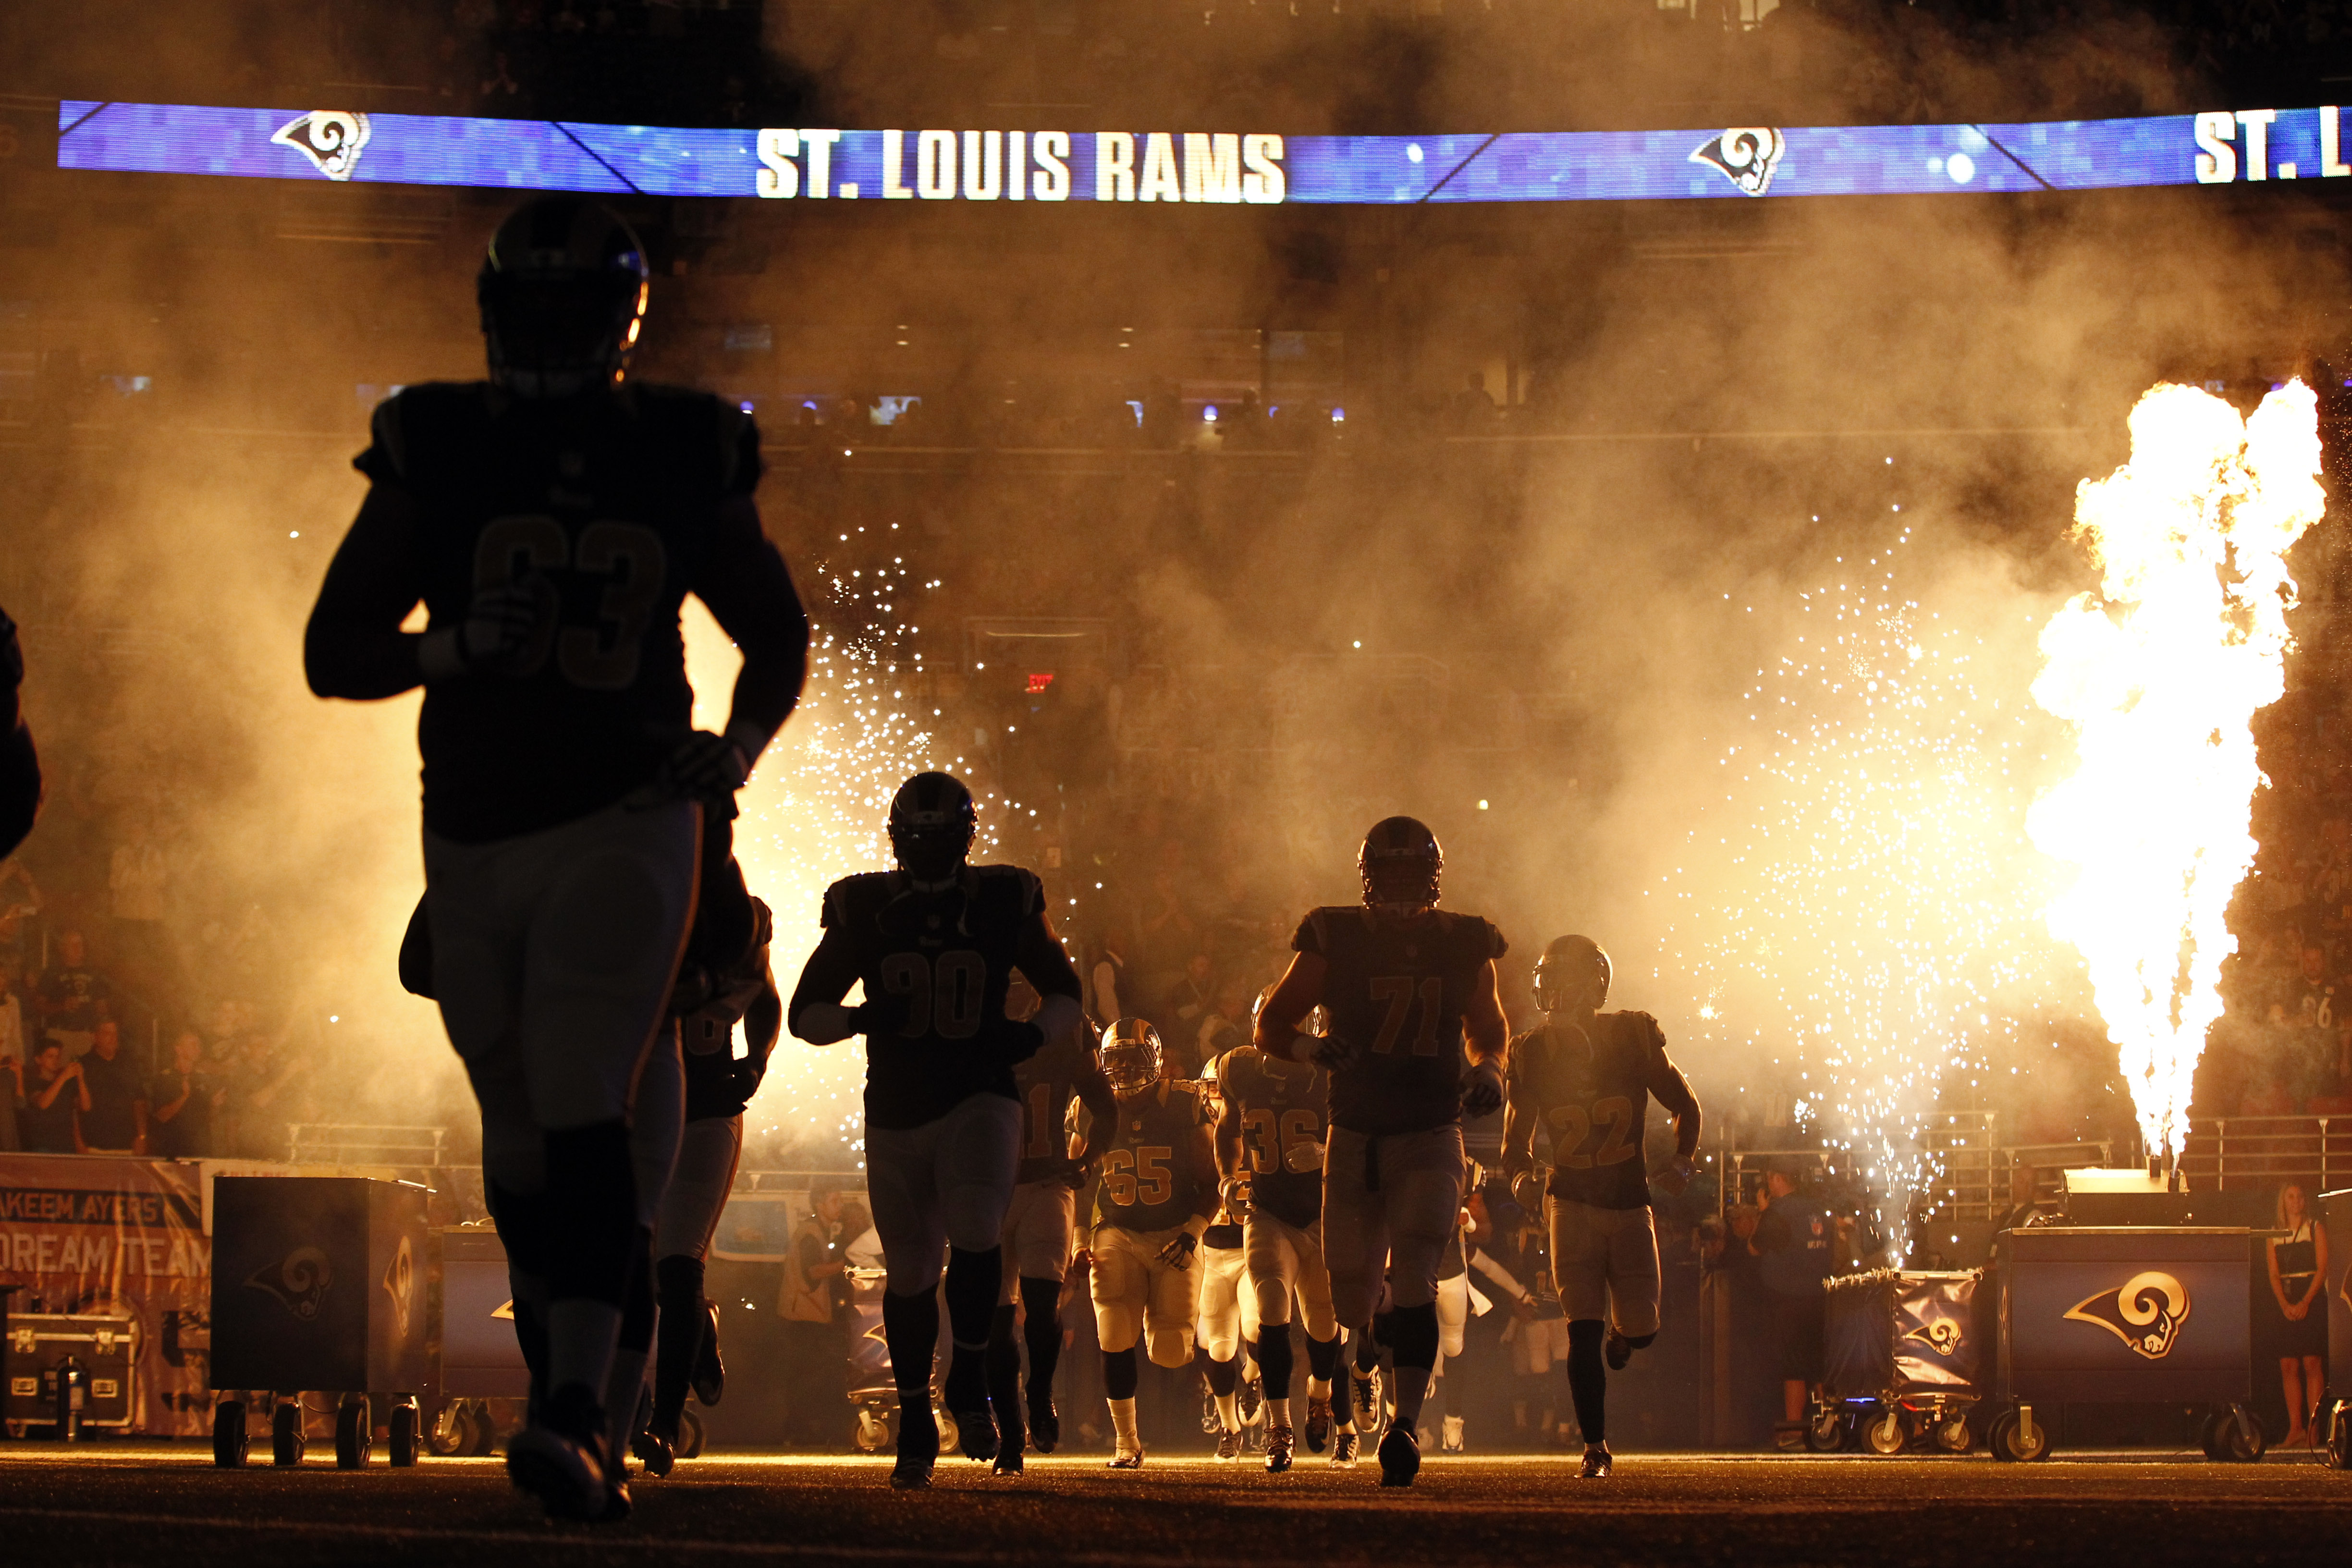 Members of the St. Louis Rams run on the field before an NFL football game against the Pittsburgh Steelers, Sunday, Sept. 27, 2015, in St. Louis. The game was delayed because part of the pyrotechnics used during the introductions briefly caught the turf o